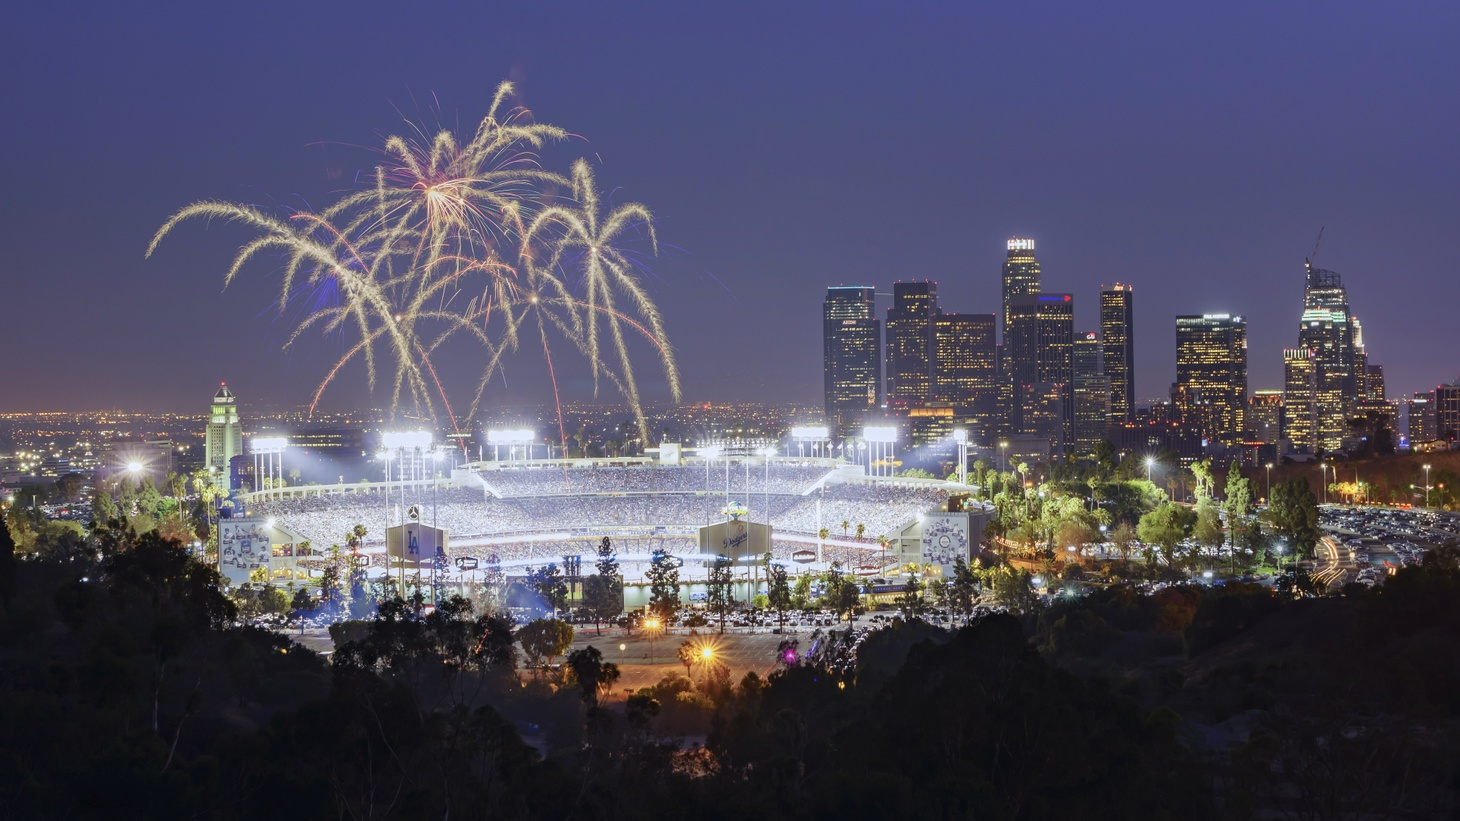 Fireworks light up over Dodger Stadium. Fireworks are illegal in the City of LA, but the LA Fire Department has a list of professional shows on their website that you can attend through the July 4 weekend.